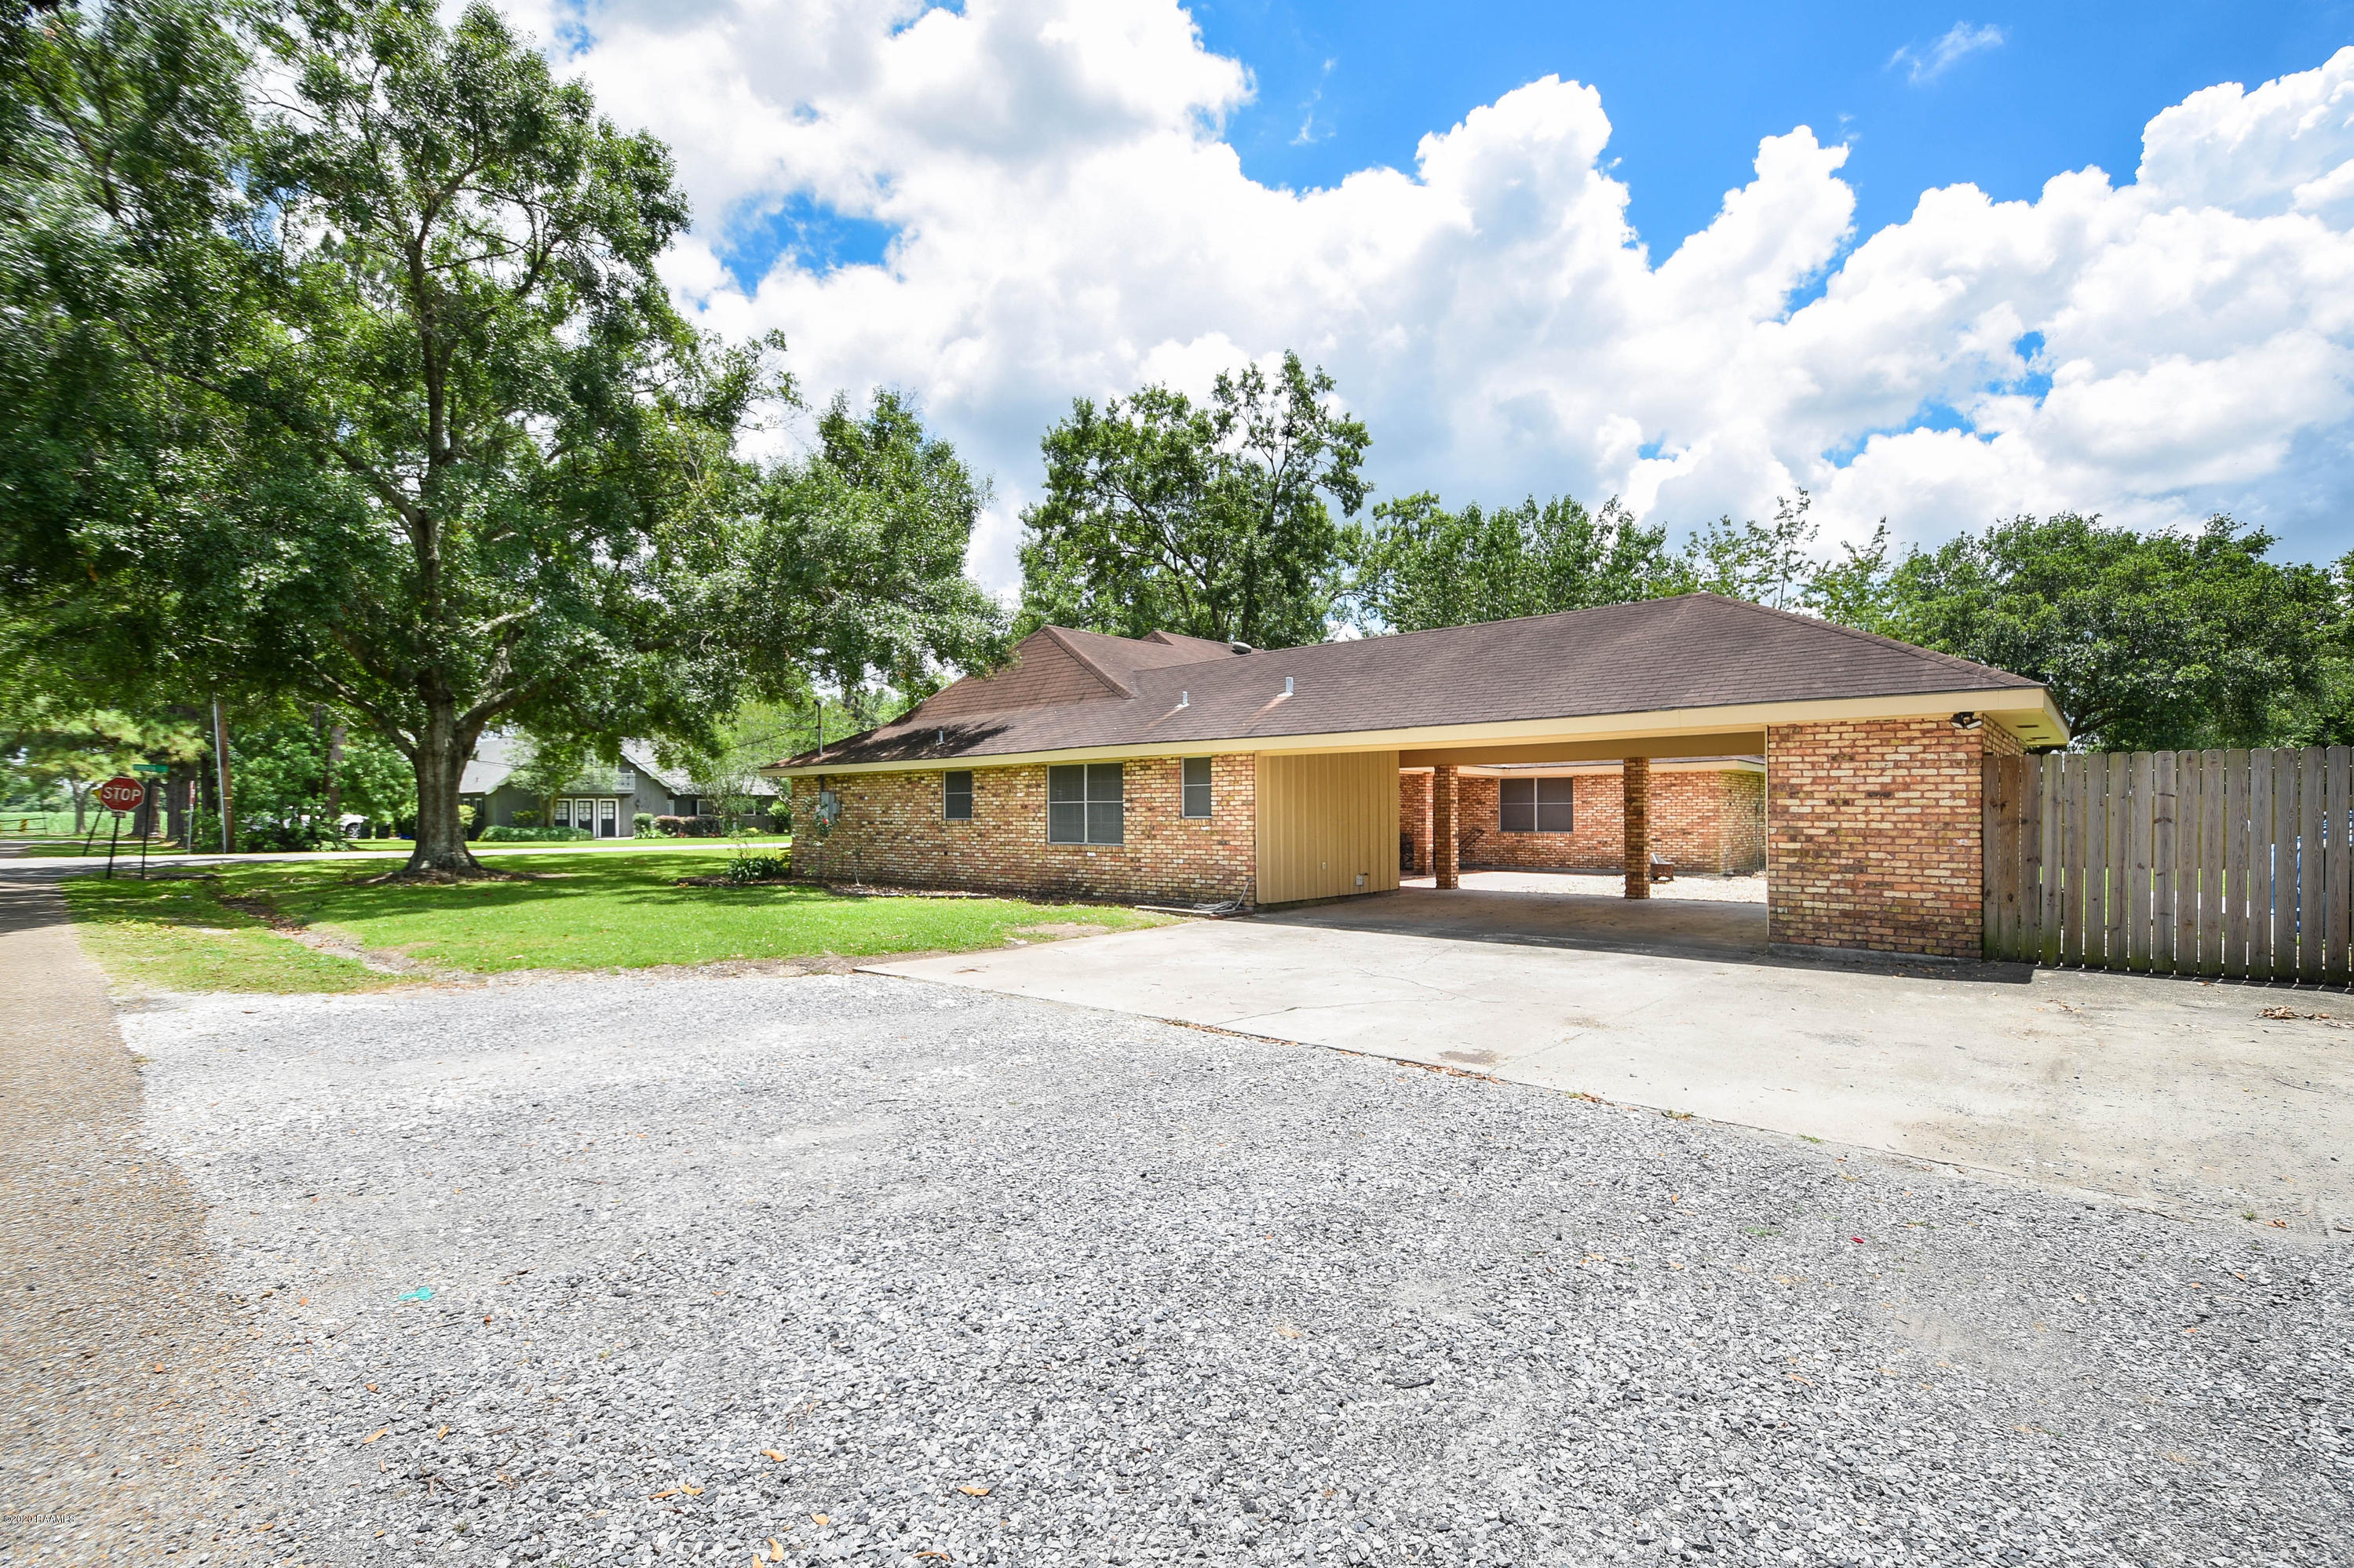 613 Evergreen Drive, New Iberia, LA 70563 Photo #6